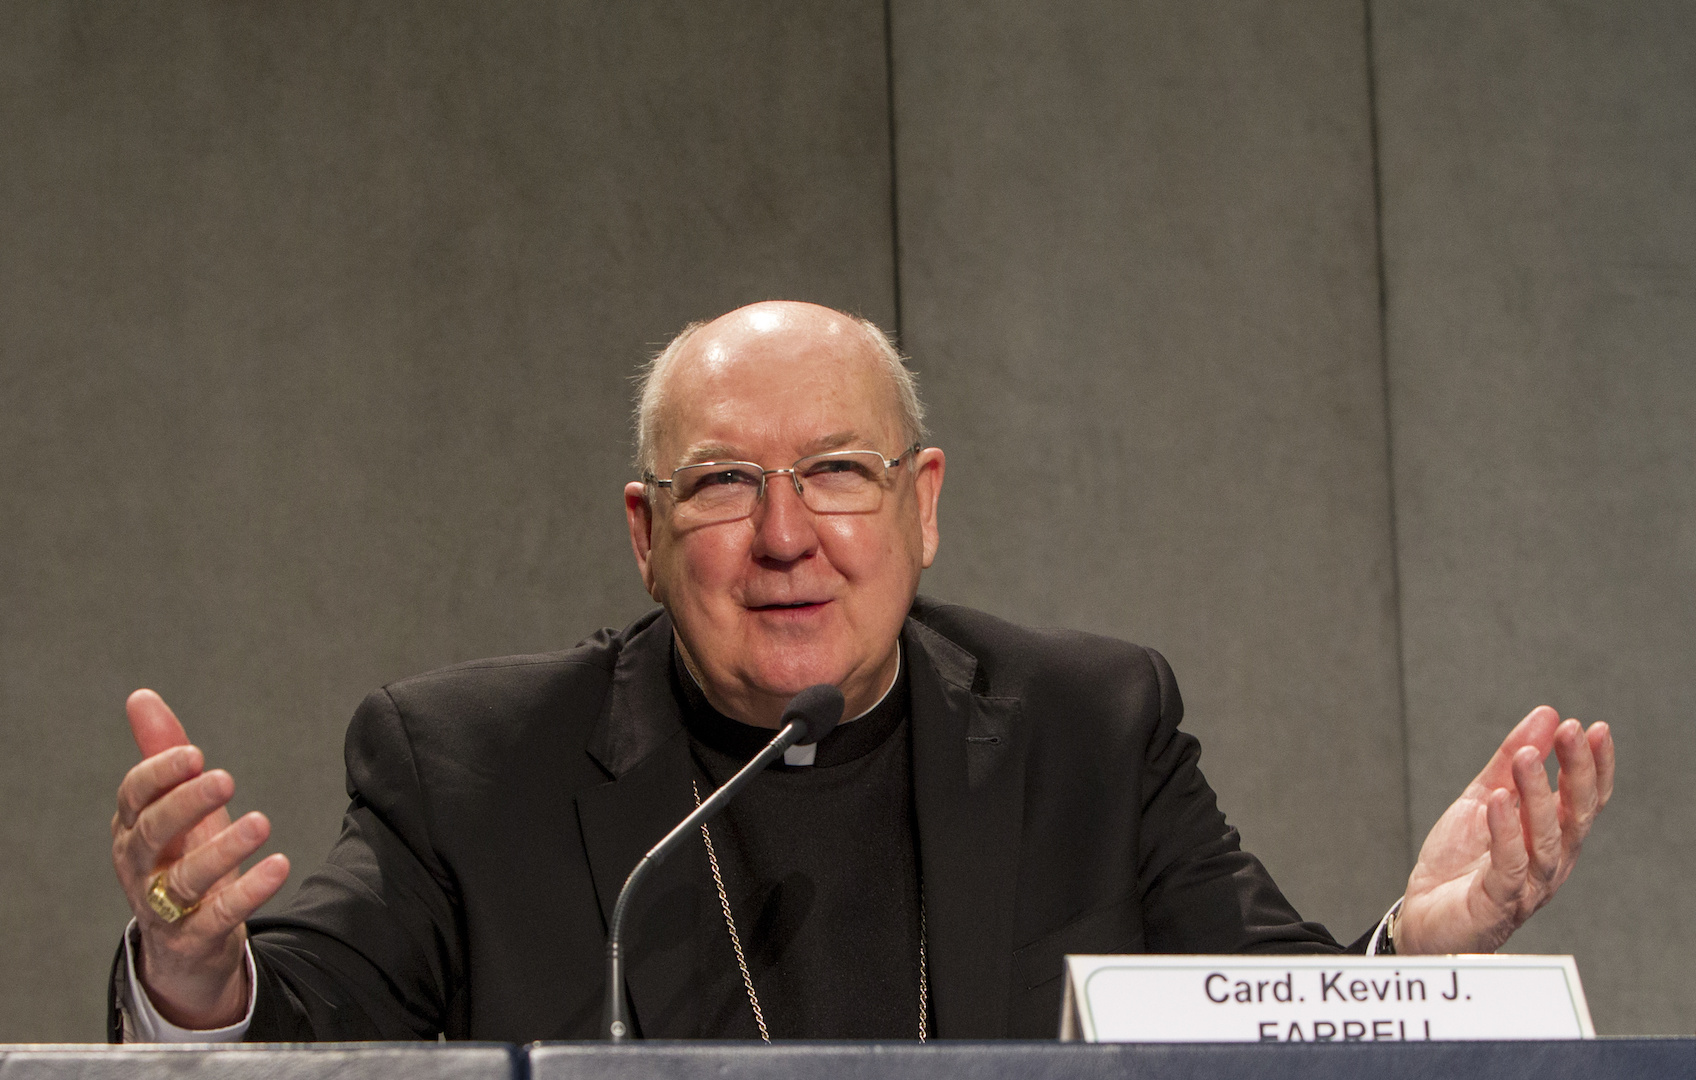 Cardinal Kevin J. Farrell, prefect of the Dicastery for the Laity, Family and Life, answers questions at a Vatican news conference on the 2018 World Meeting of Families, which will be held in Dublin. (CNS photo/Robert Duncan)